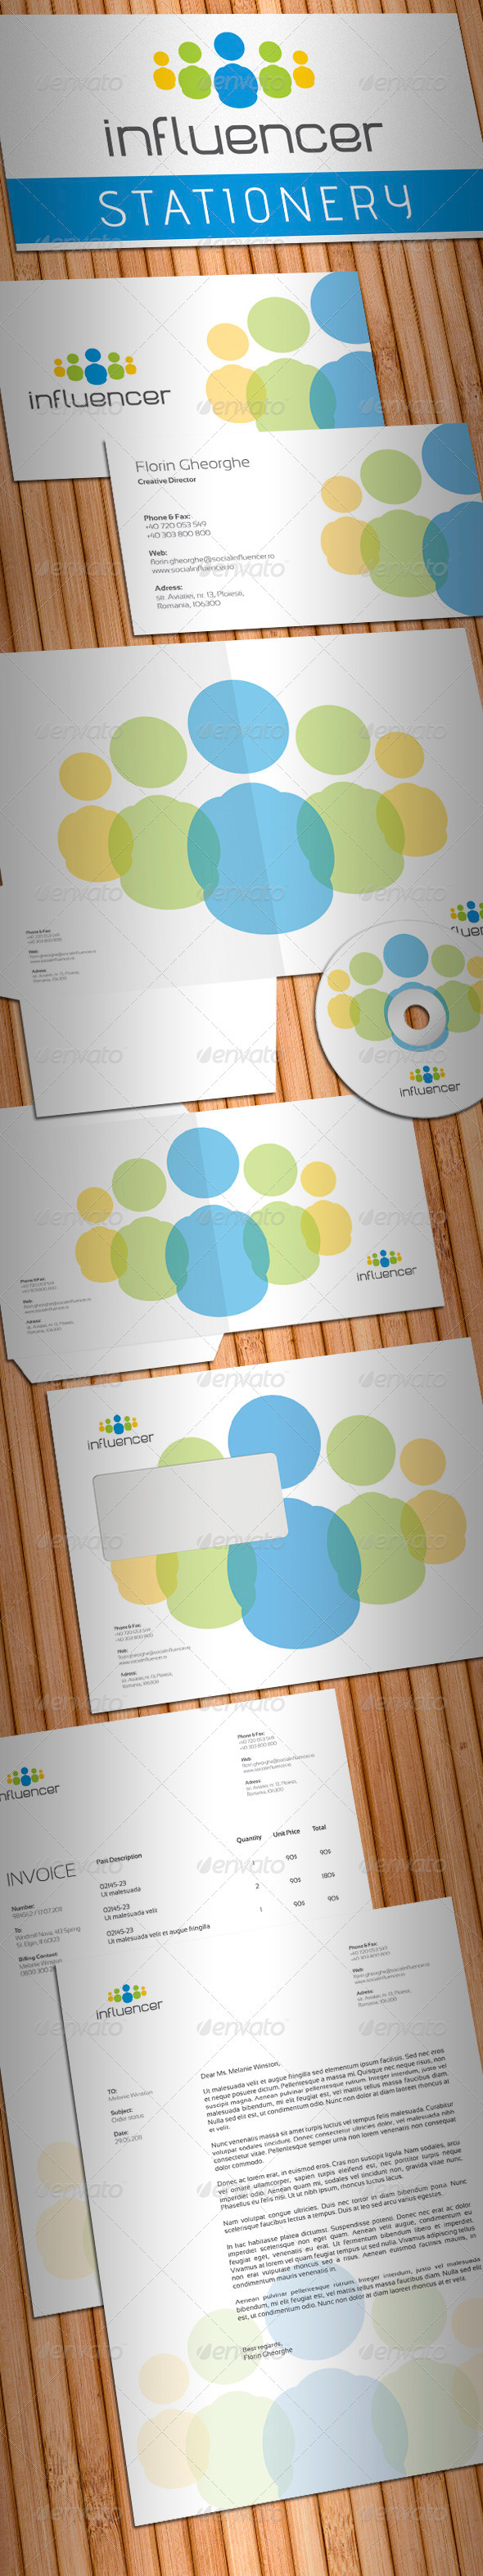 GraphicRiver Social Media Influencer Stationery 701920